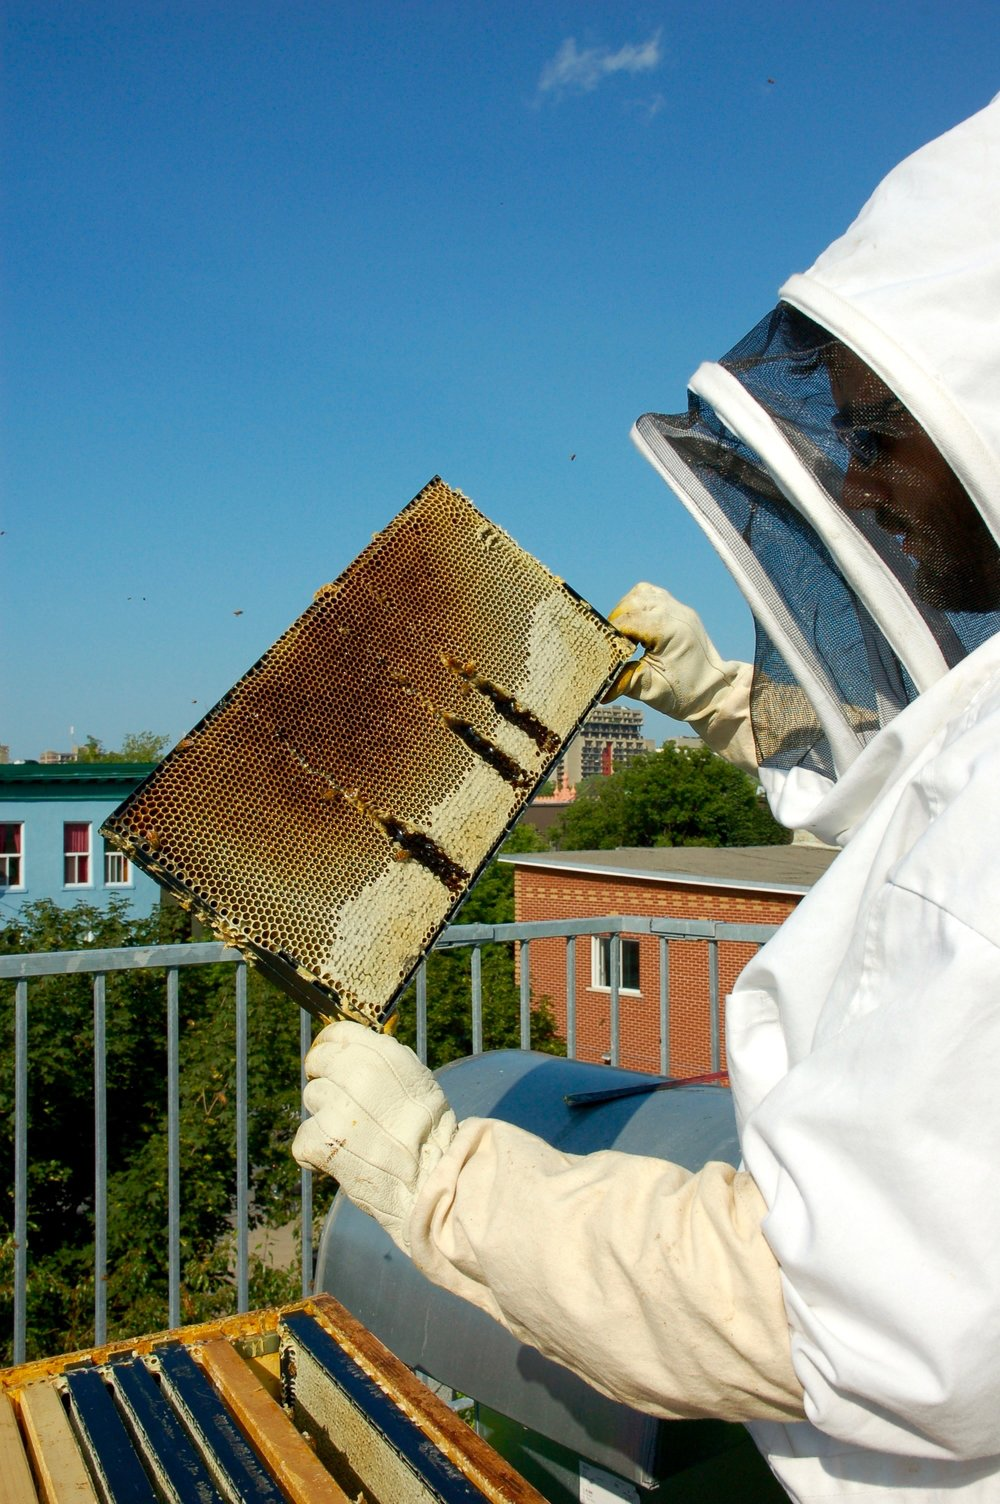 It's honey extraction day for Santropol Roulant. A beekeeper gestures to larvae hidden in the honeycomb on the roof of the nonprofit organisation on July 10, 2015.